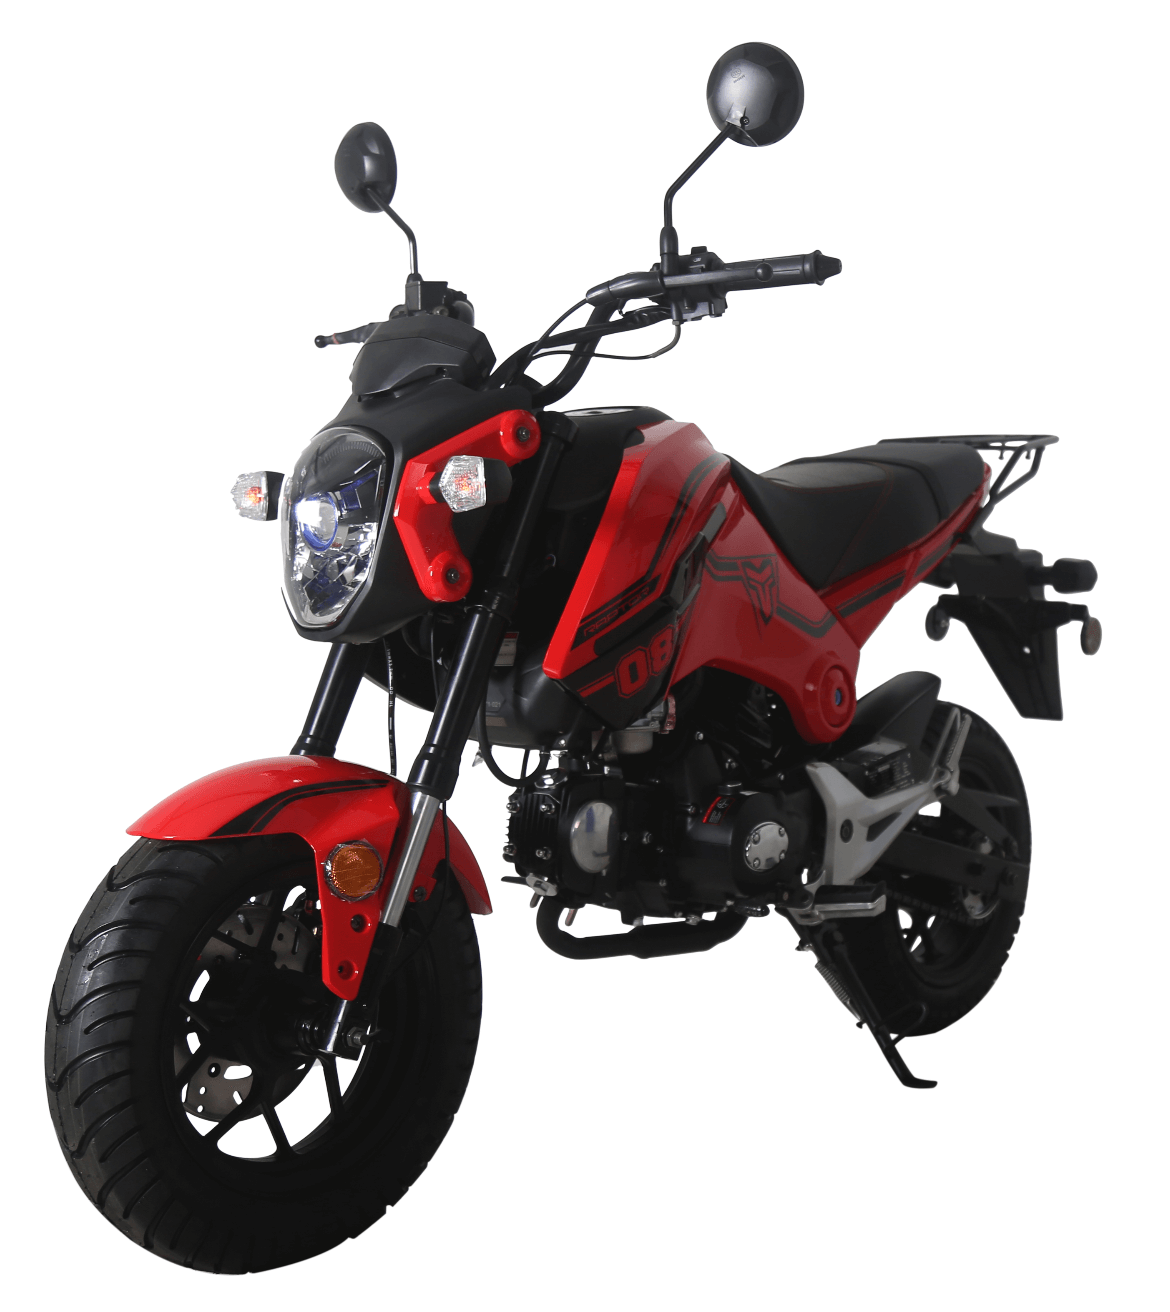 125cc Scooters/Mopeds